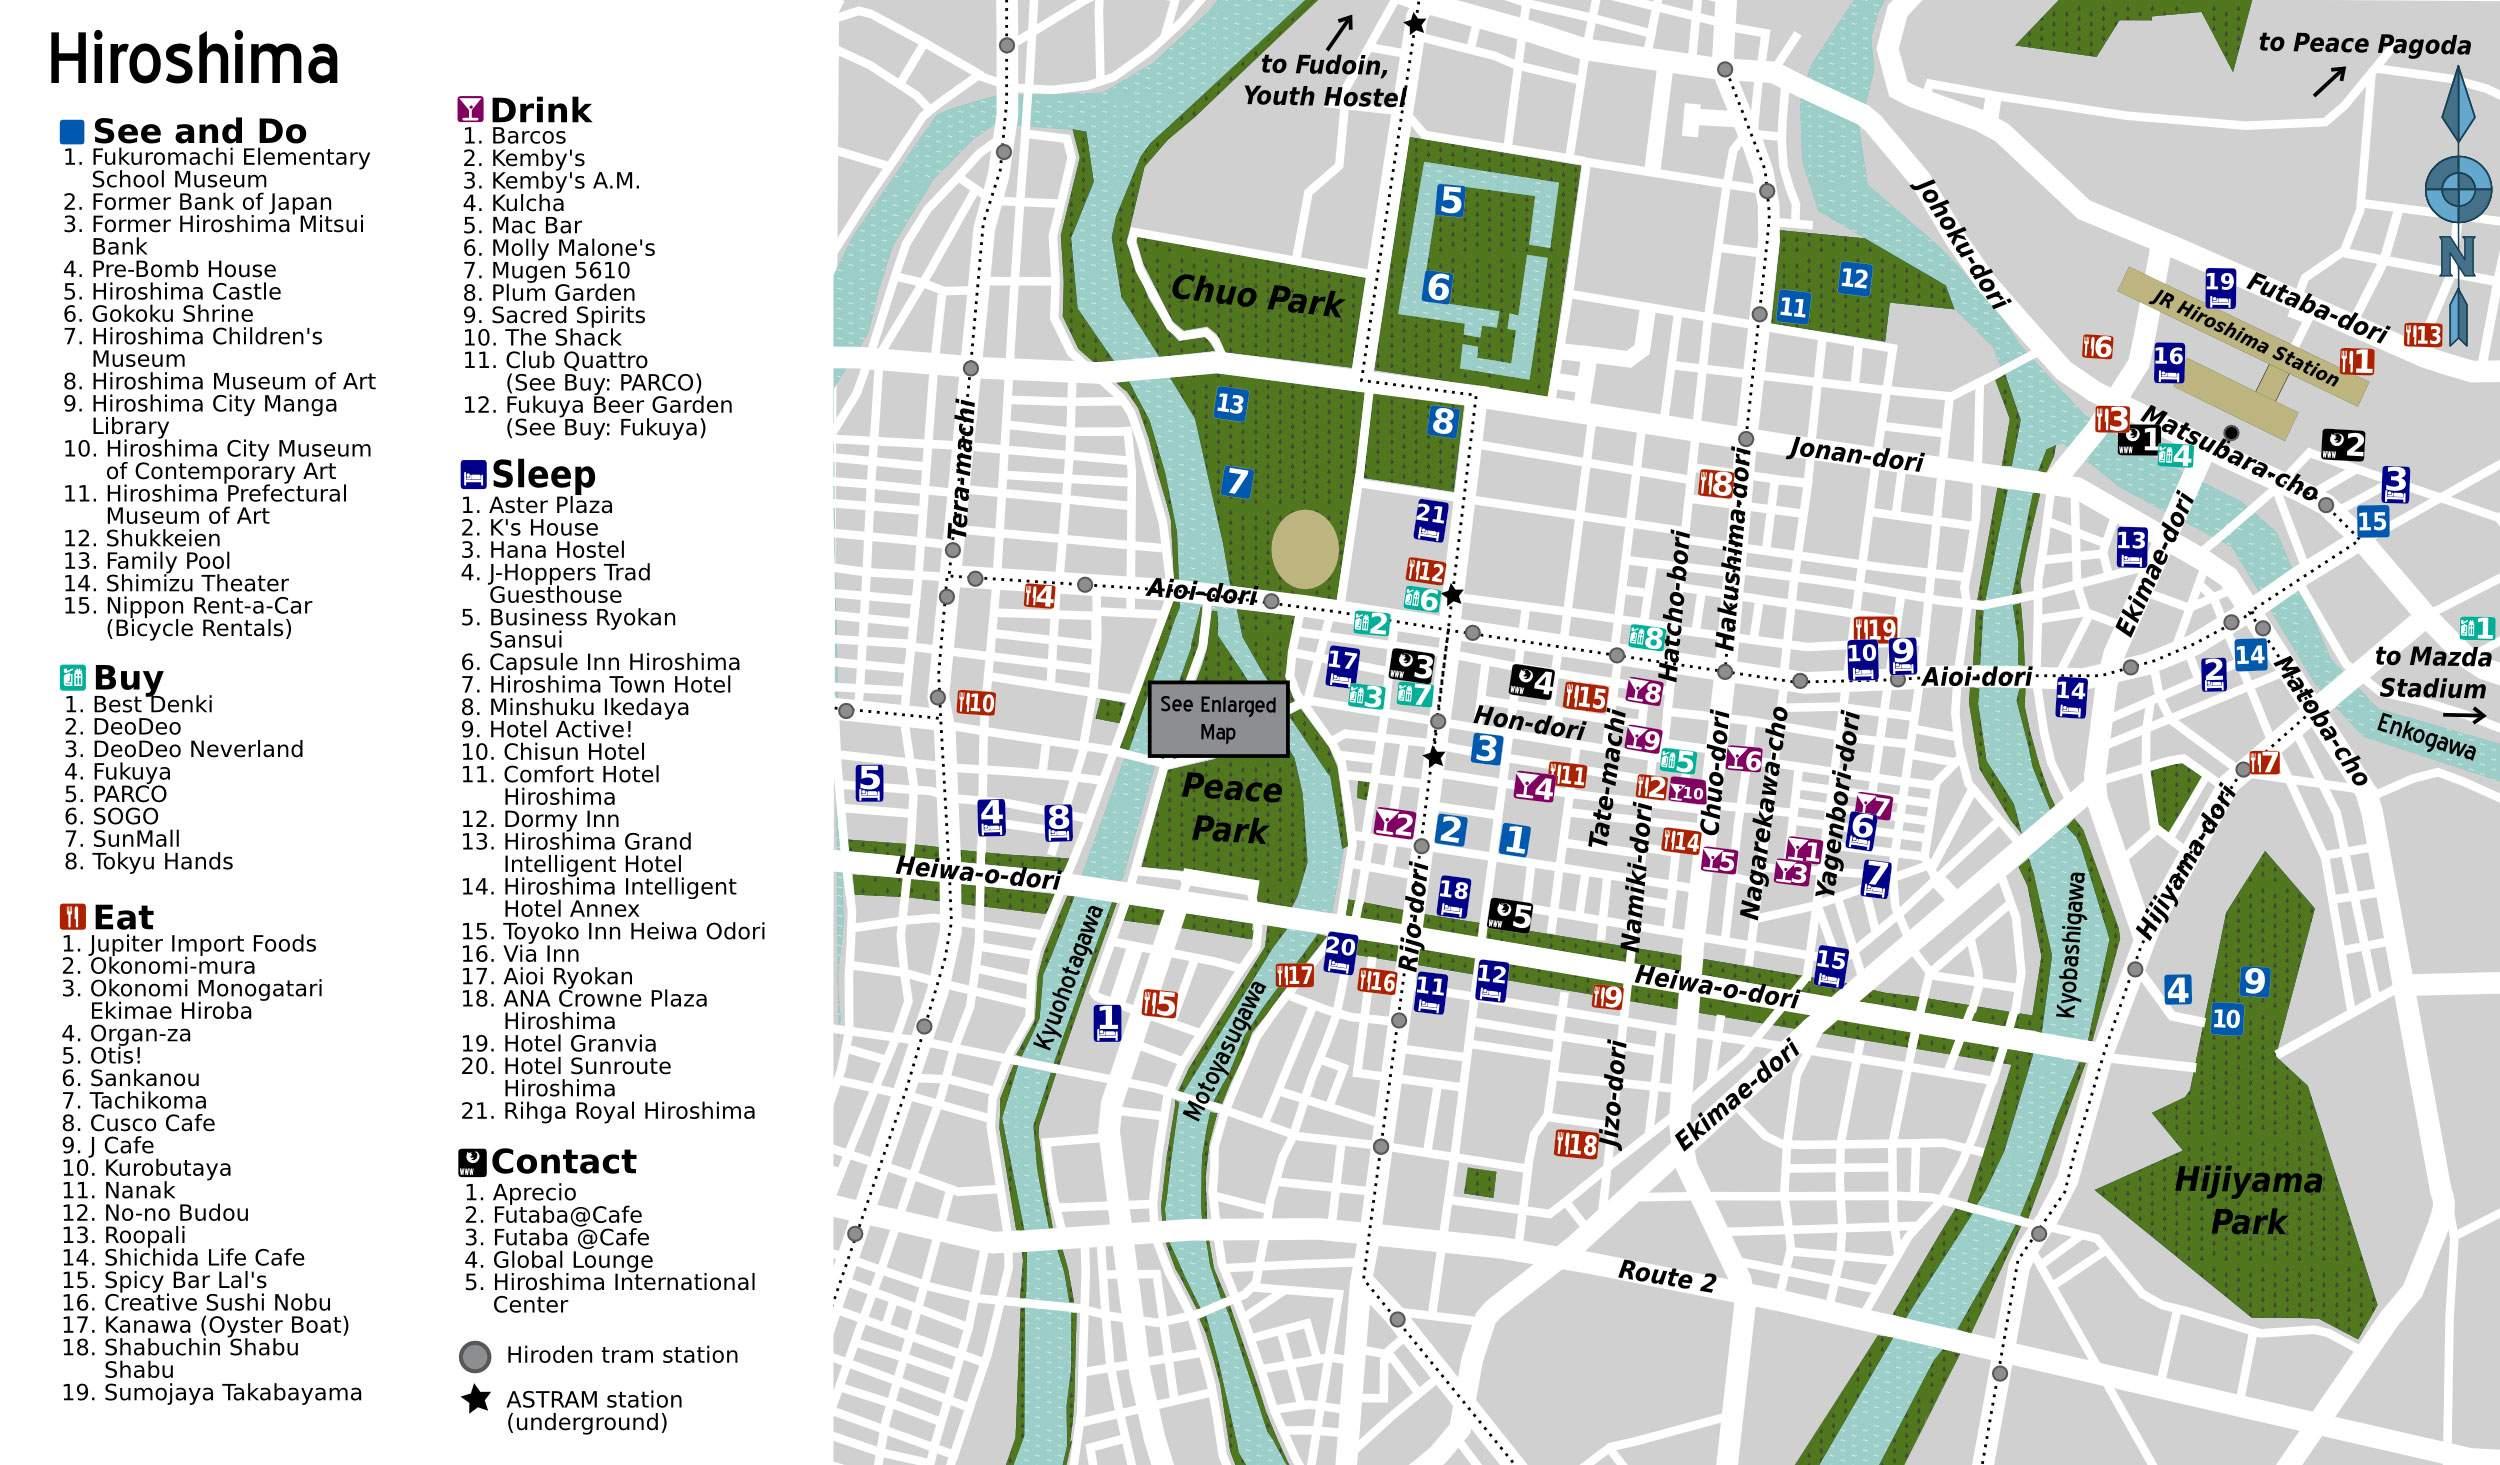 http://www.orangesmile.com/common/img_city_maps/hiroshima-map-1.jpg